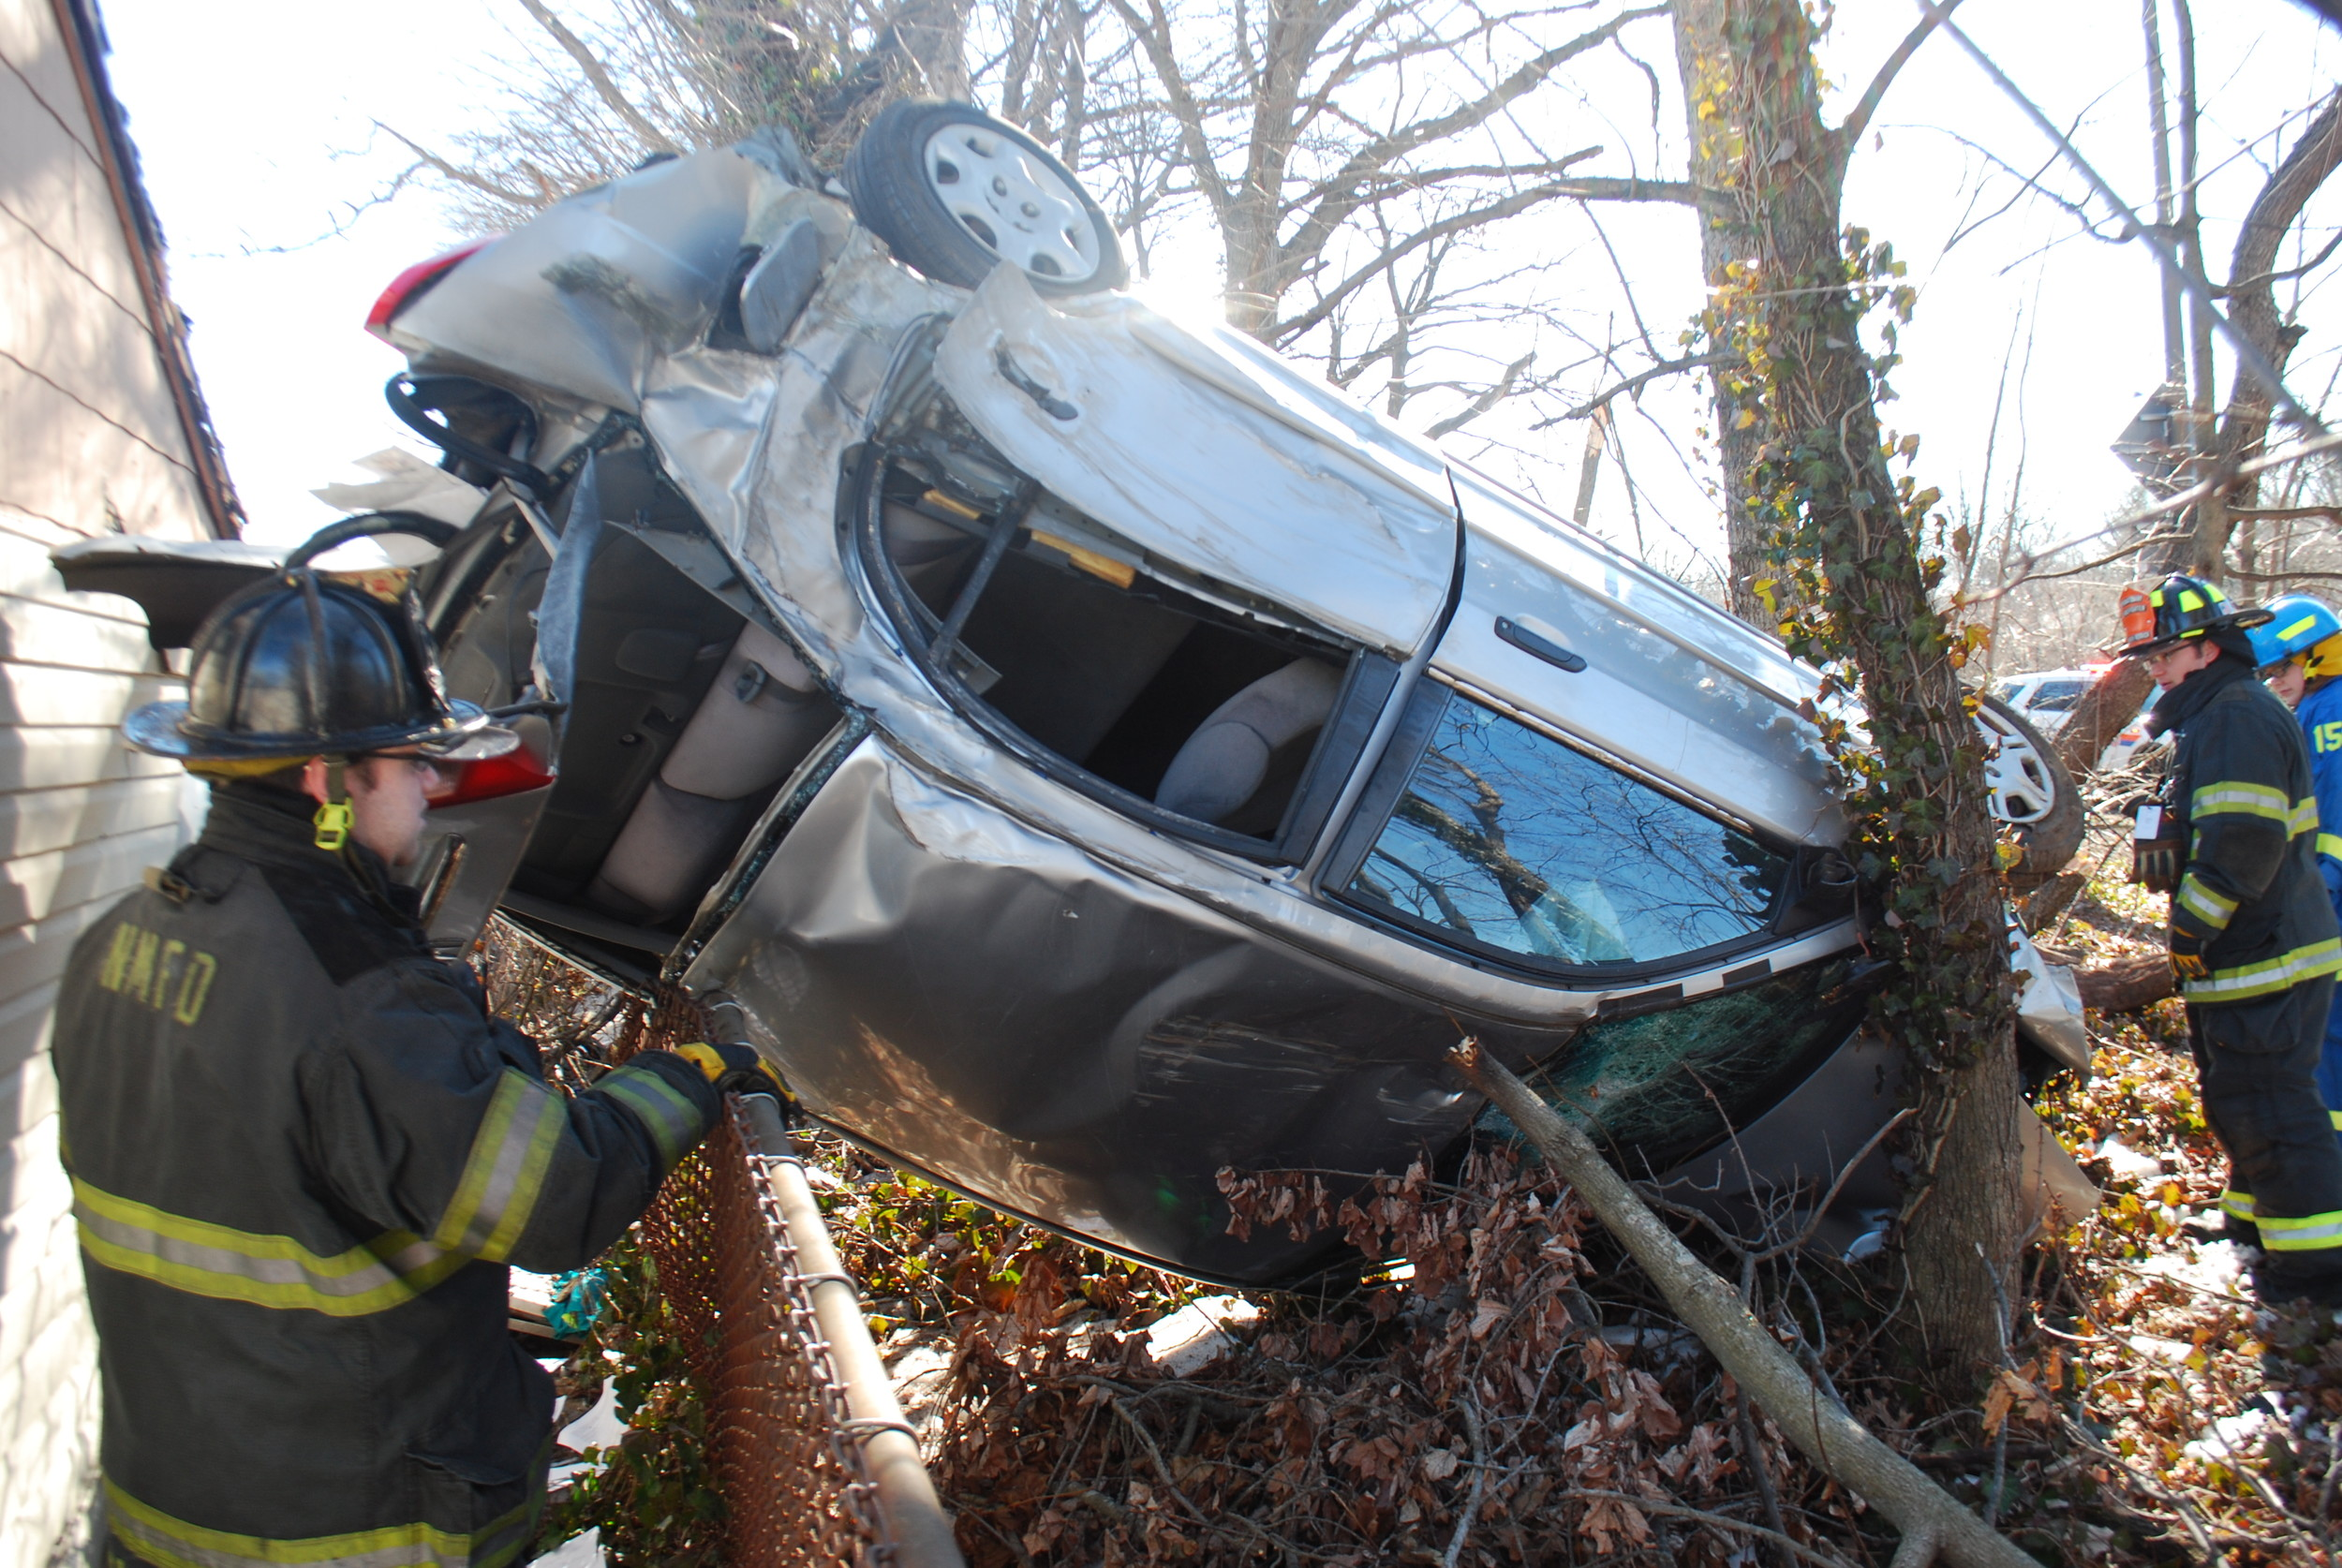 Eventz J. Francois, 26, of Amityville, crashed and flipped his car before fleeing from the scene, police say.